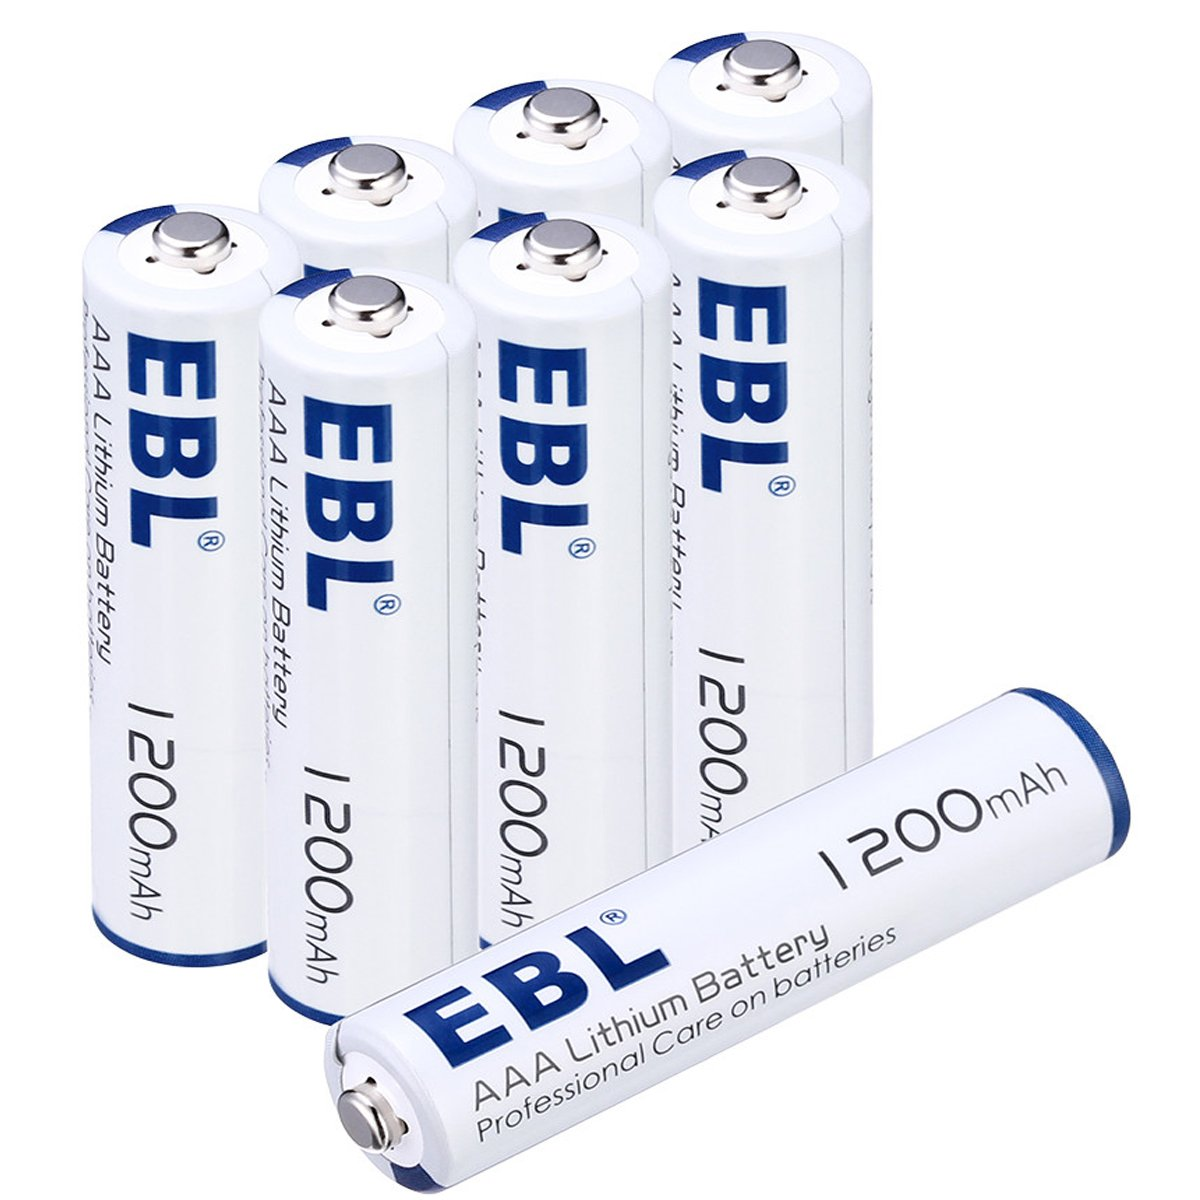 EBL AA Batteries 1.5V Lithium 8 Pack AA Battery 3000mAh Ultra fit Mouse, Toys, Digital Cameras Non Rechargeable EBL-AA